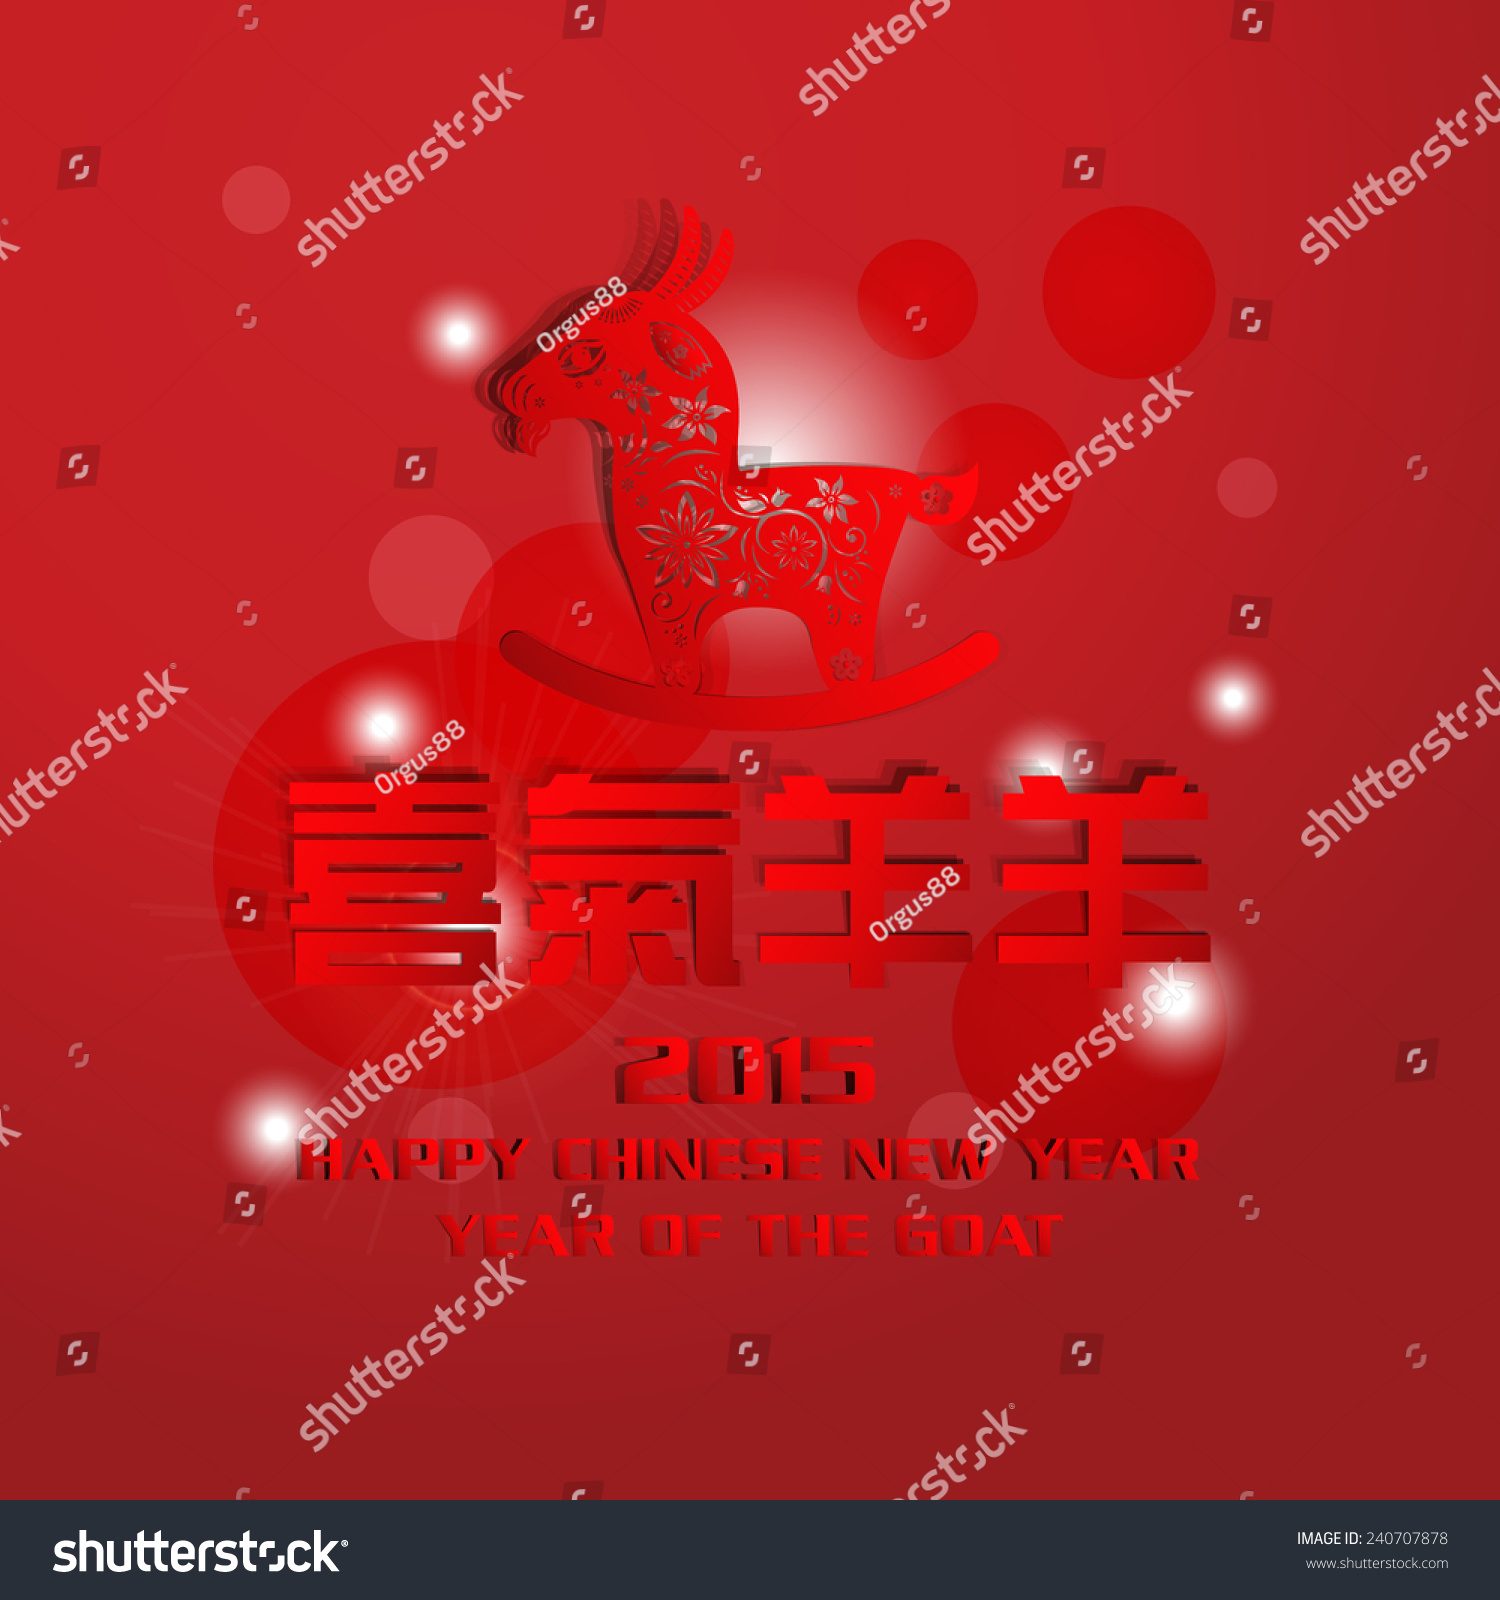 Chinese year goat goat year chinese stock vector 240707878 chinese year of goat goat year chinese zodiac symbol chinese character for translation biocorpaavc Images